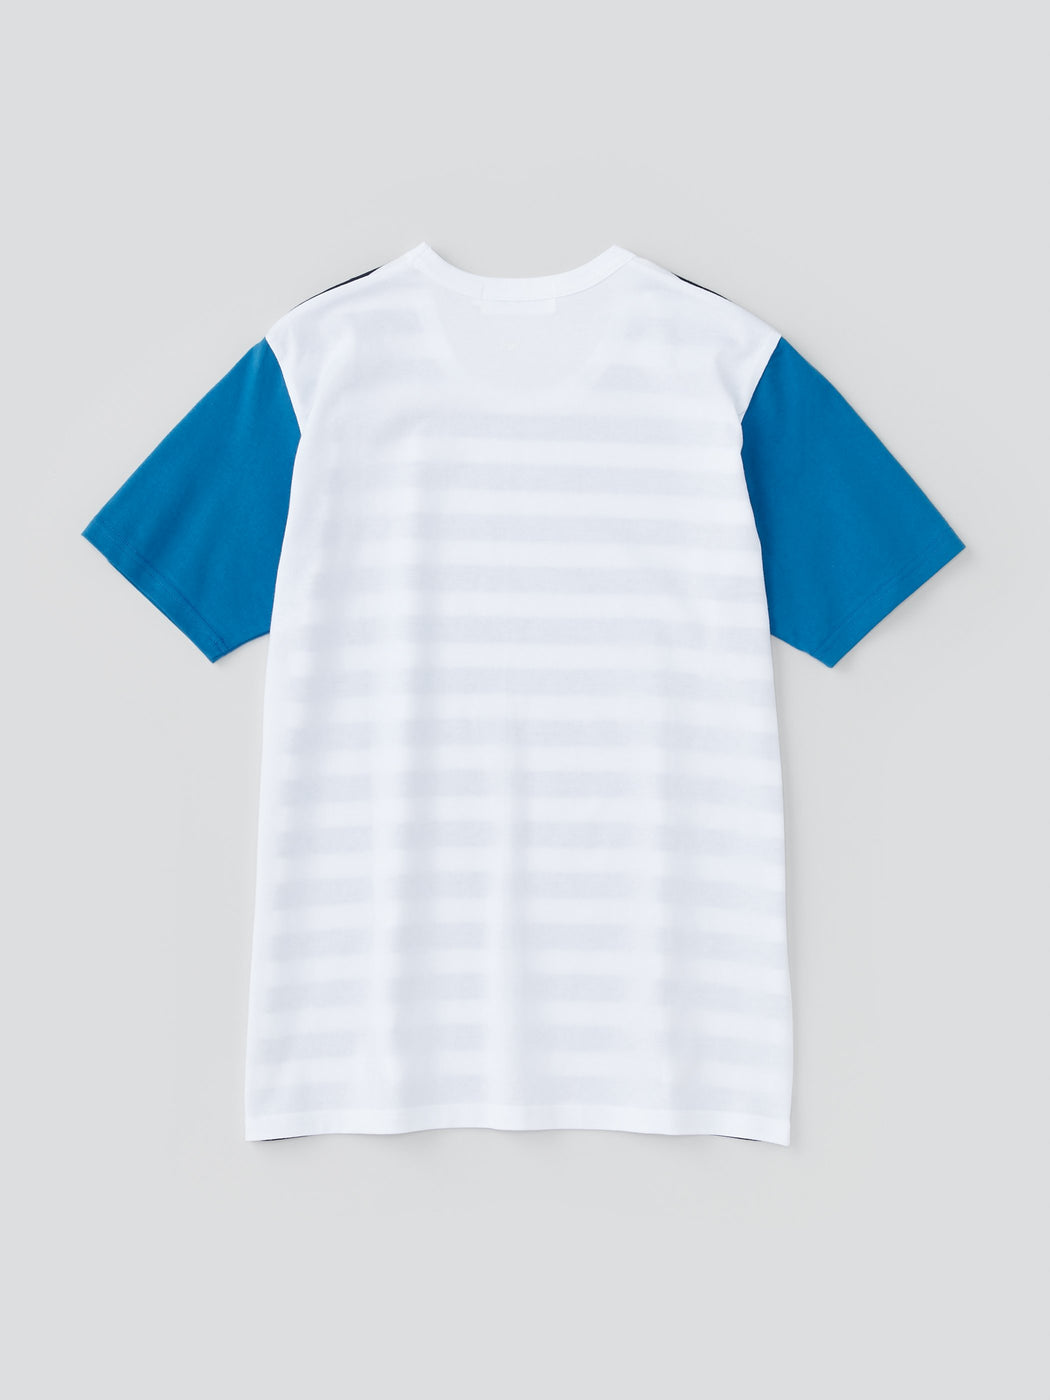 Dots & Stripes Men's Short Sleeve T-shirt